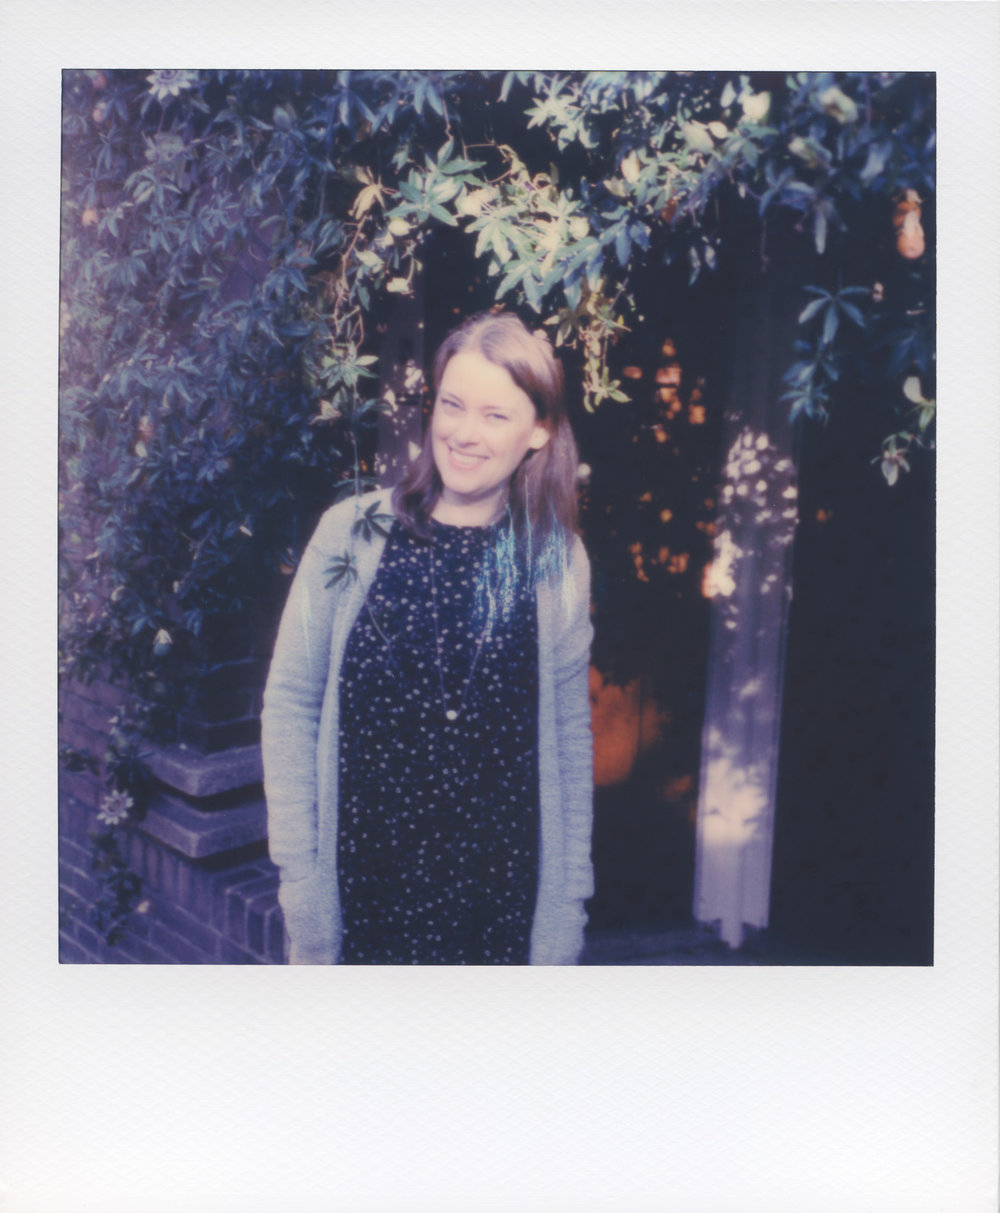 New_York_+_Amsterdam_Portrait_Joyce_by_On_a_hazy_morning001.jpg